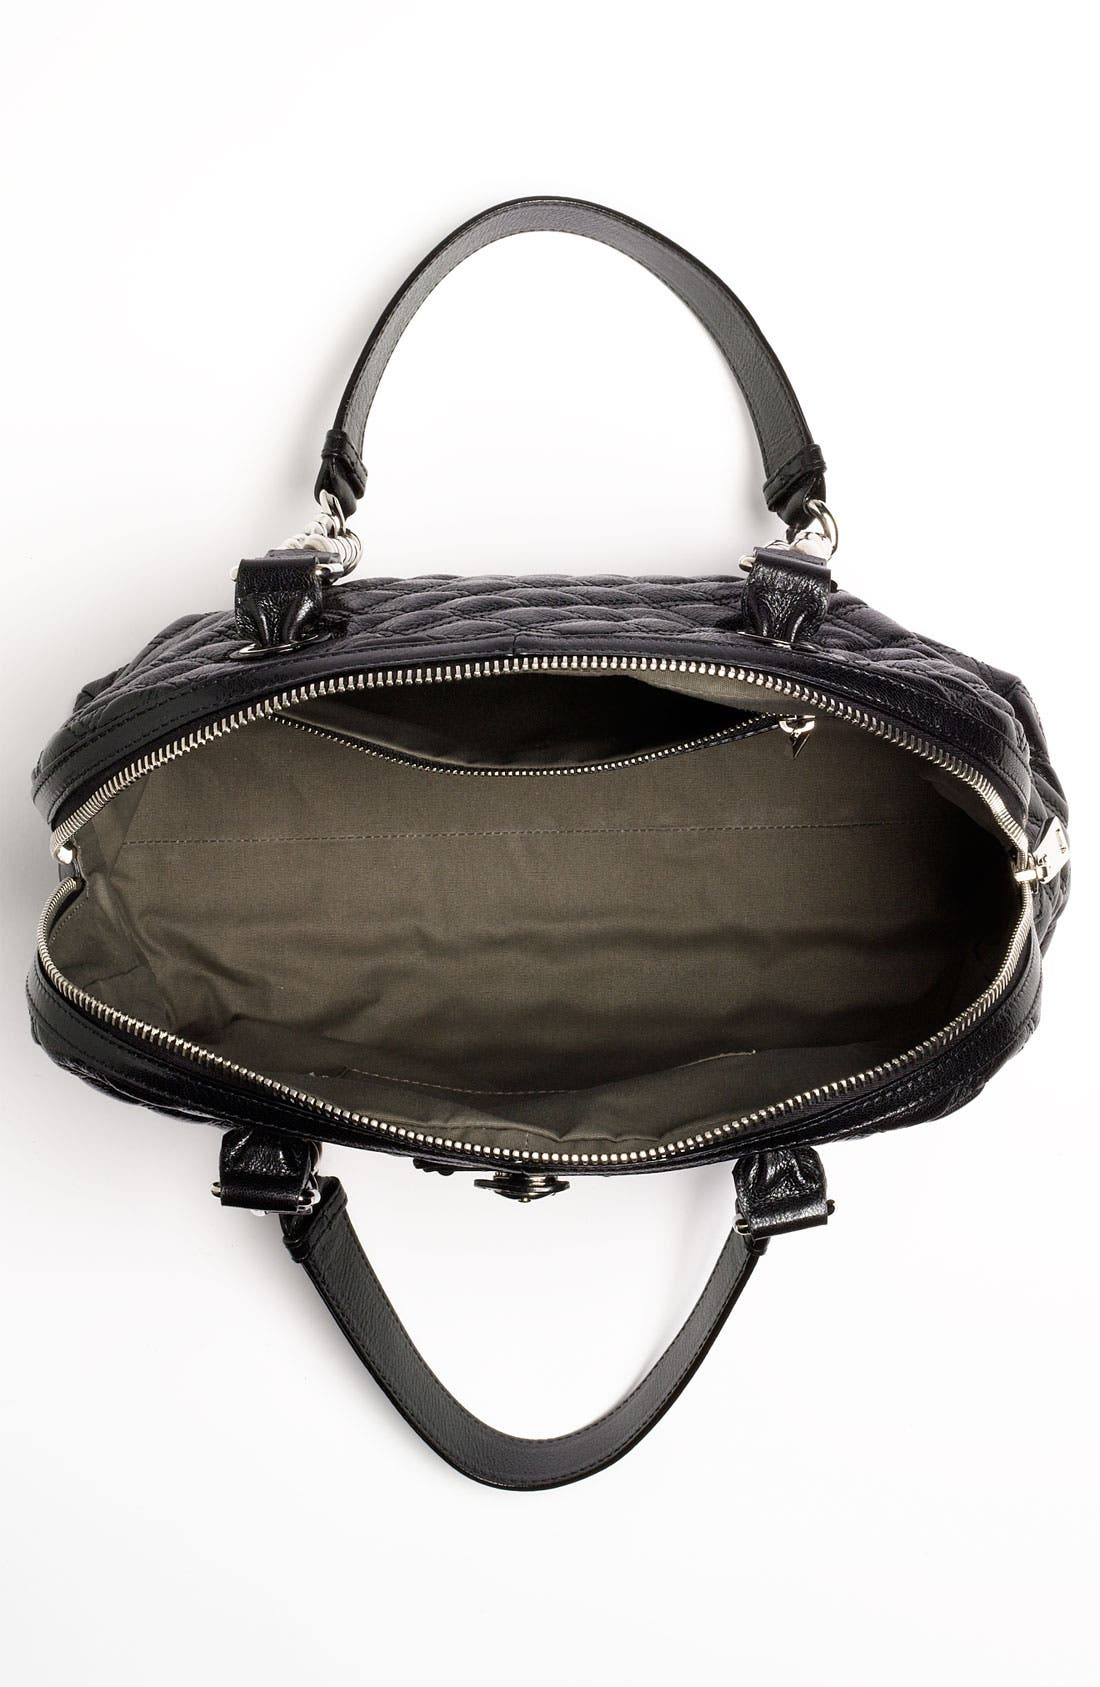 Alternate Image 3  - MARC JACOBS 'Karlie' Leather Shoulder Bag